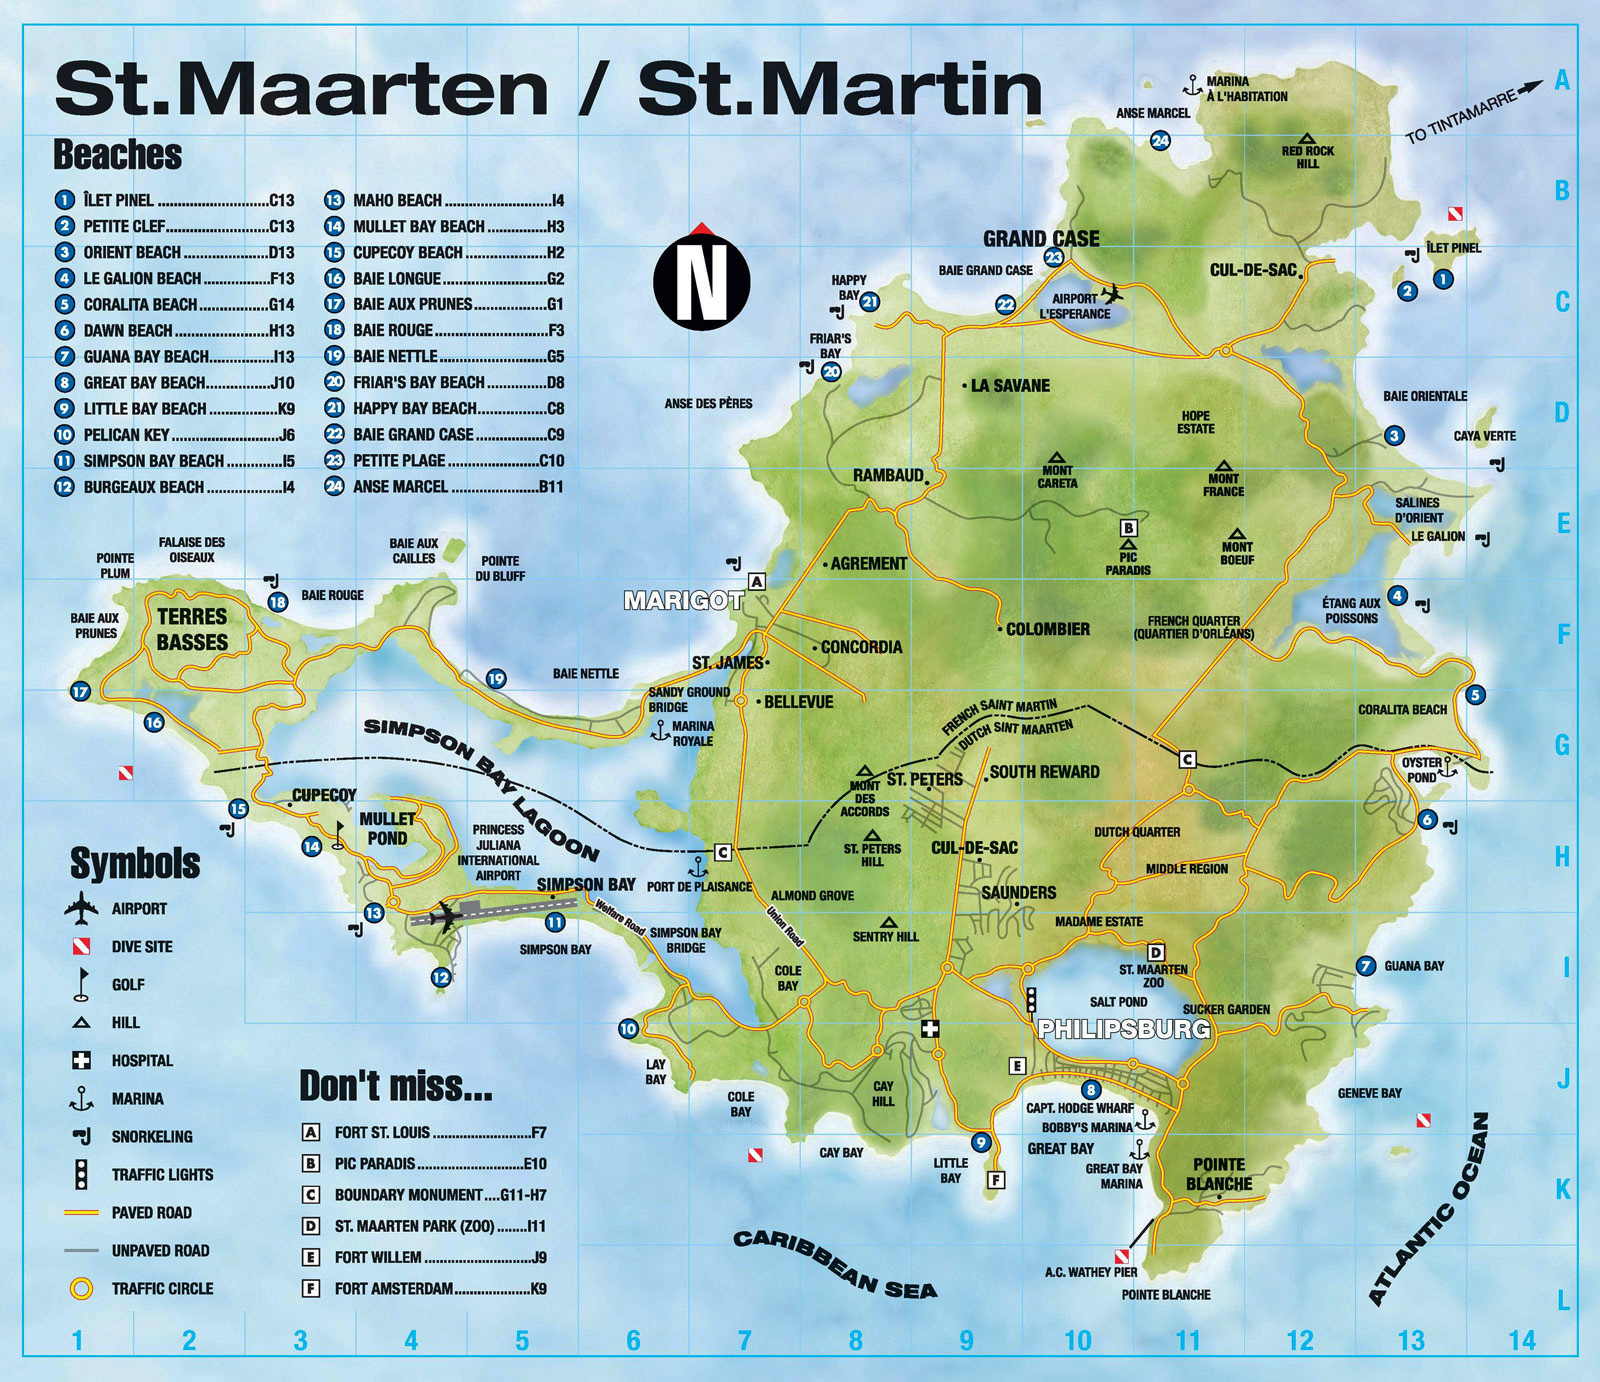 St Martin On World Map.Large Detailed Road And Physical Map Of St Maarten St Maarten